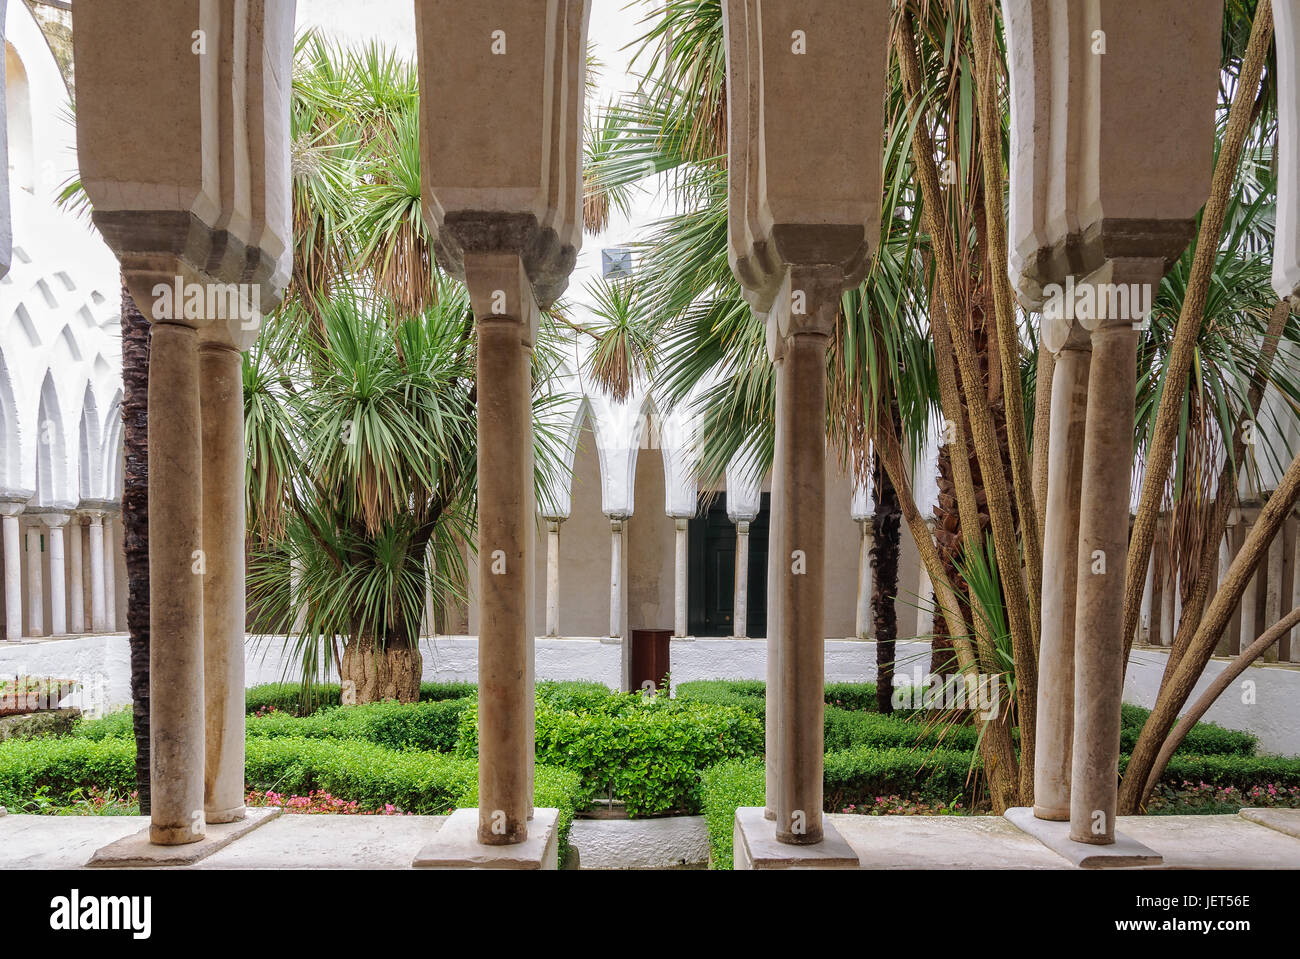 Moorish Arches High Resolution Stock Photography and ...